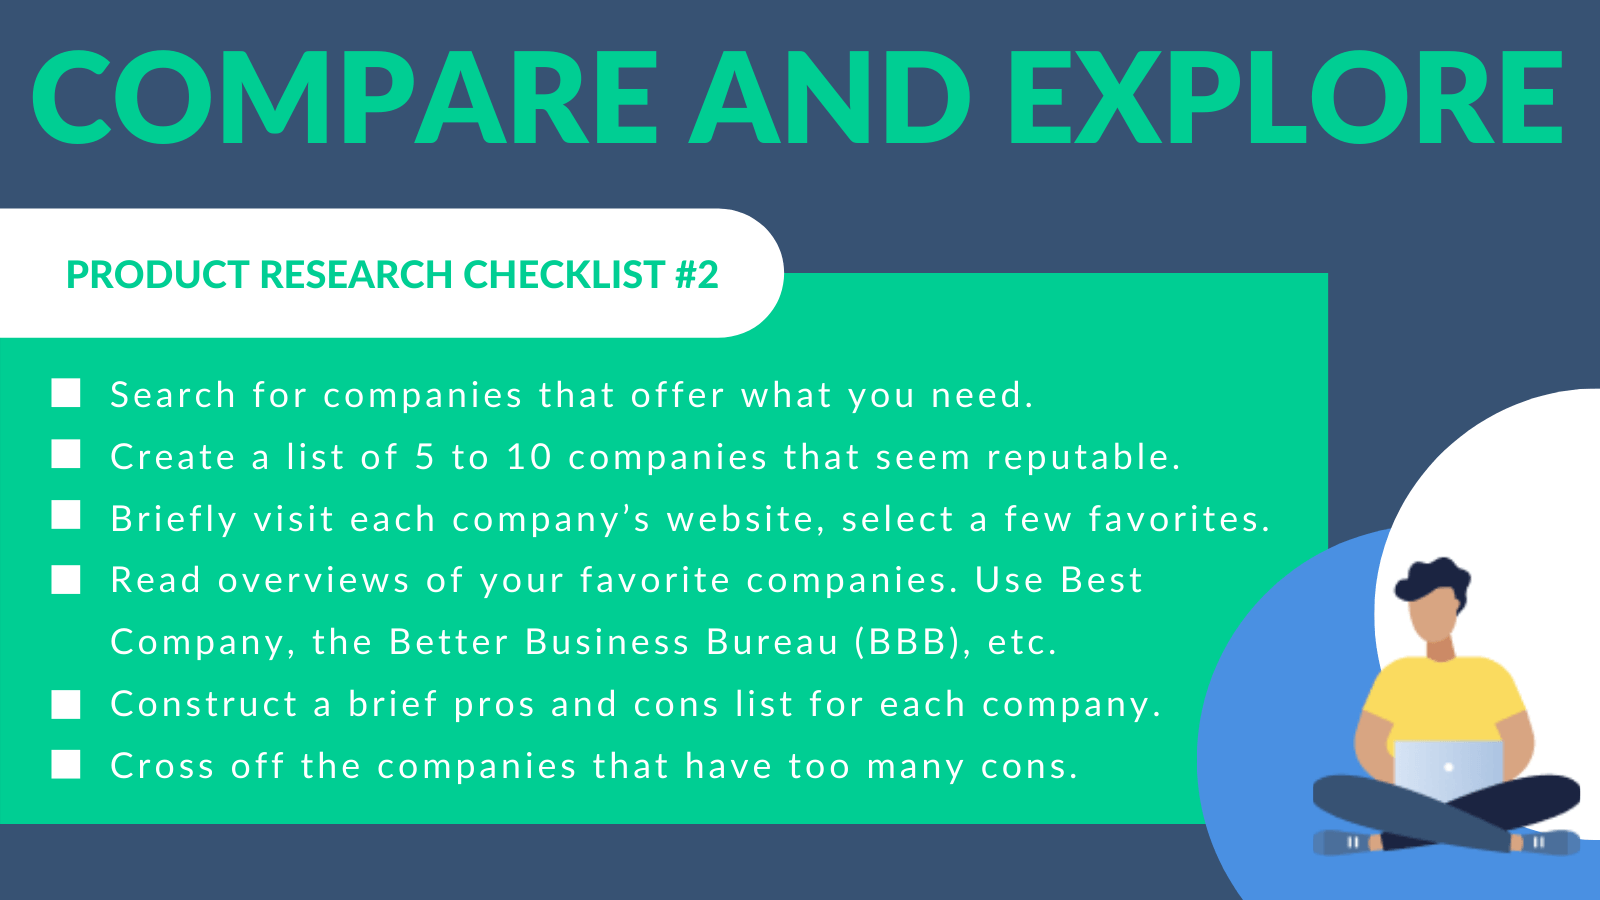 Compare and Explore Checklist